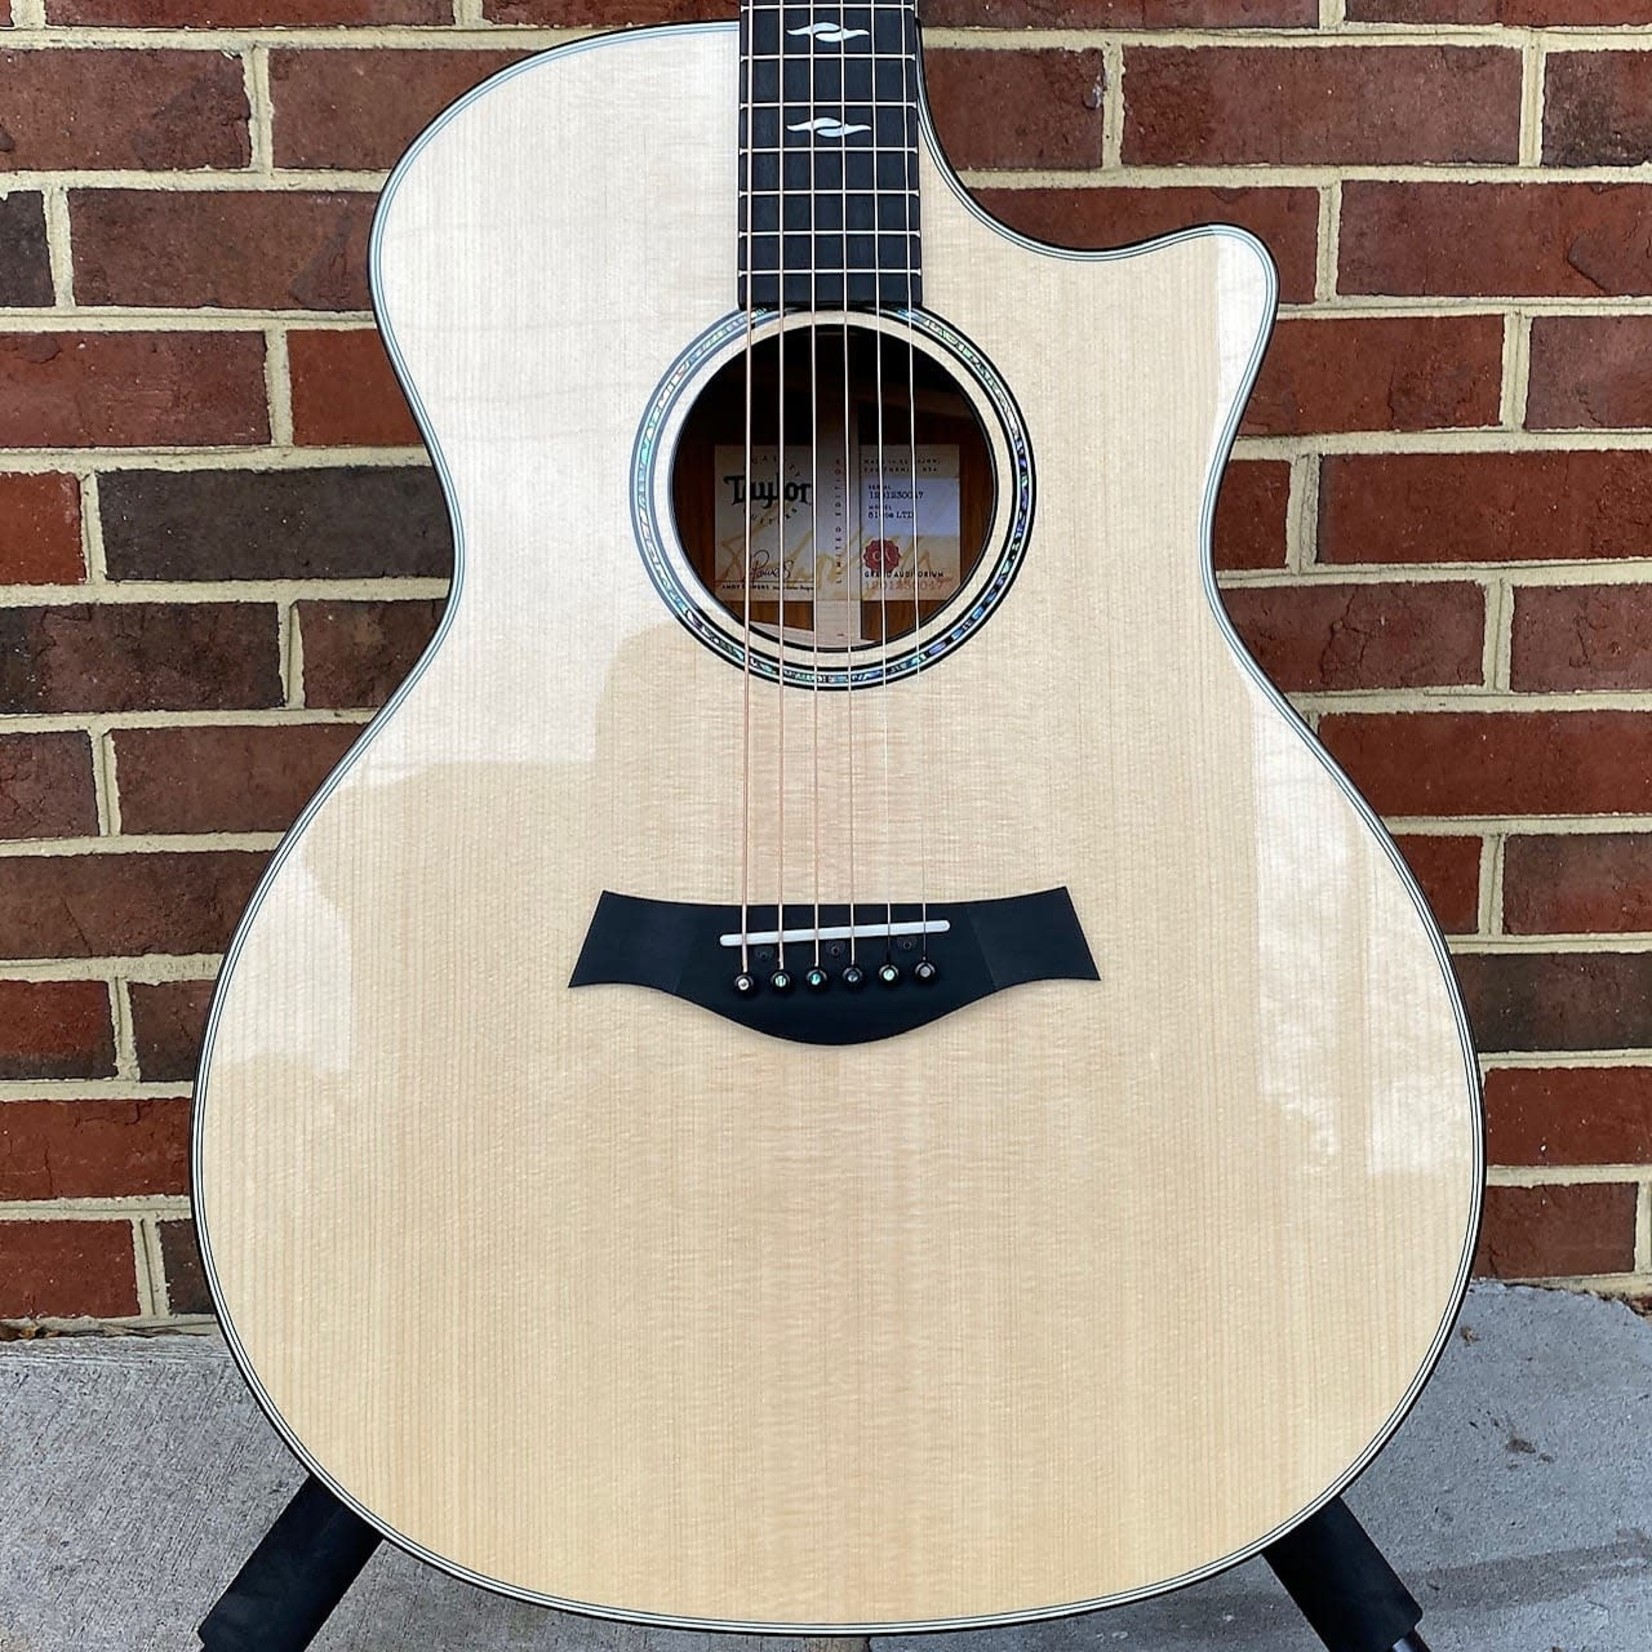 Taylor Taylor 814ce LTD, Cocobolo Back and Sides, Lutz Spruce Top, Ebony Binding, Hardshell Case